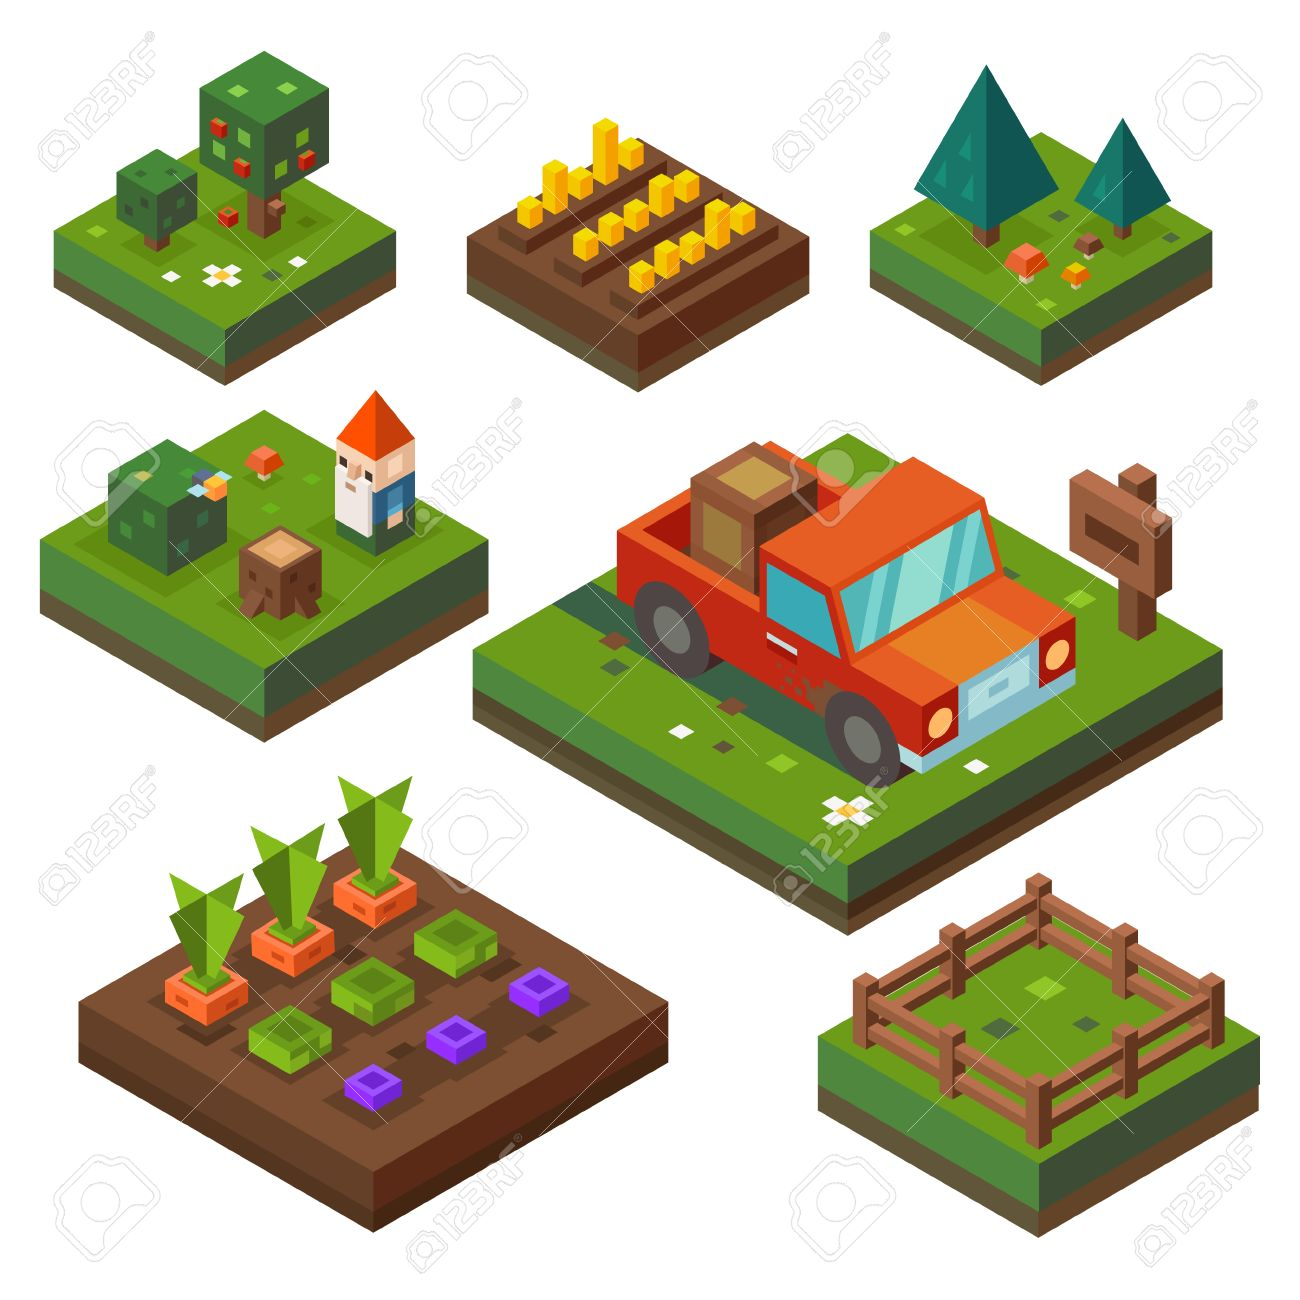 Vegetable garden cartoon - Vegetable Garden Farm At Harvest Time Vegetable Garden And Agriculture In Isometry